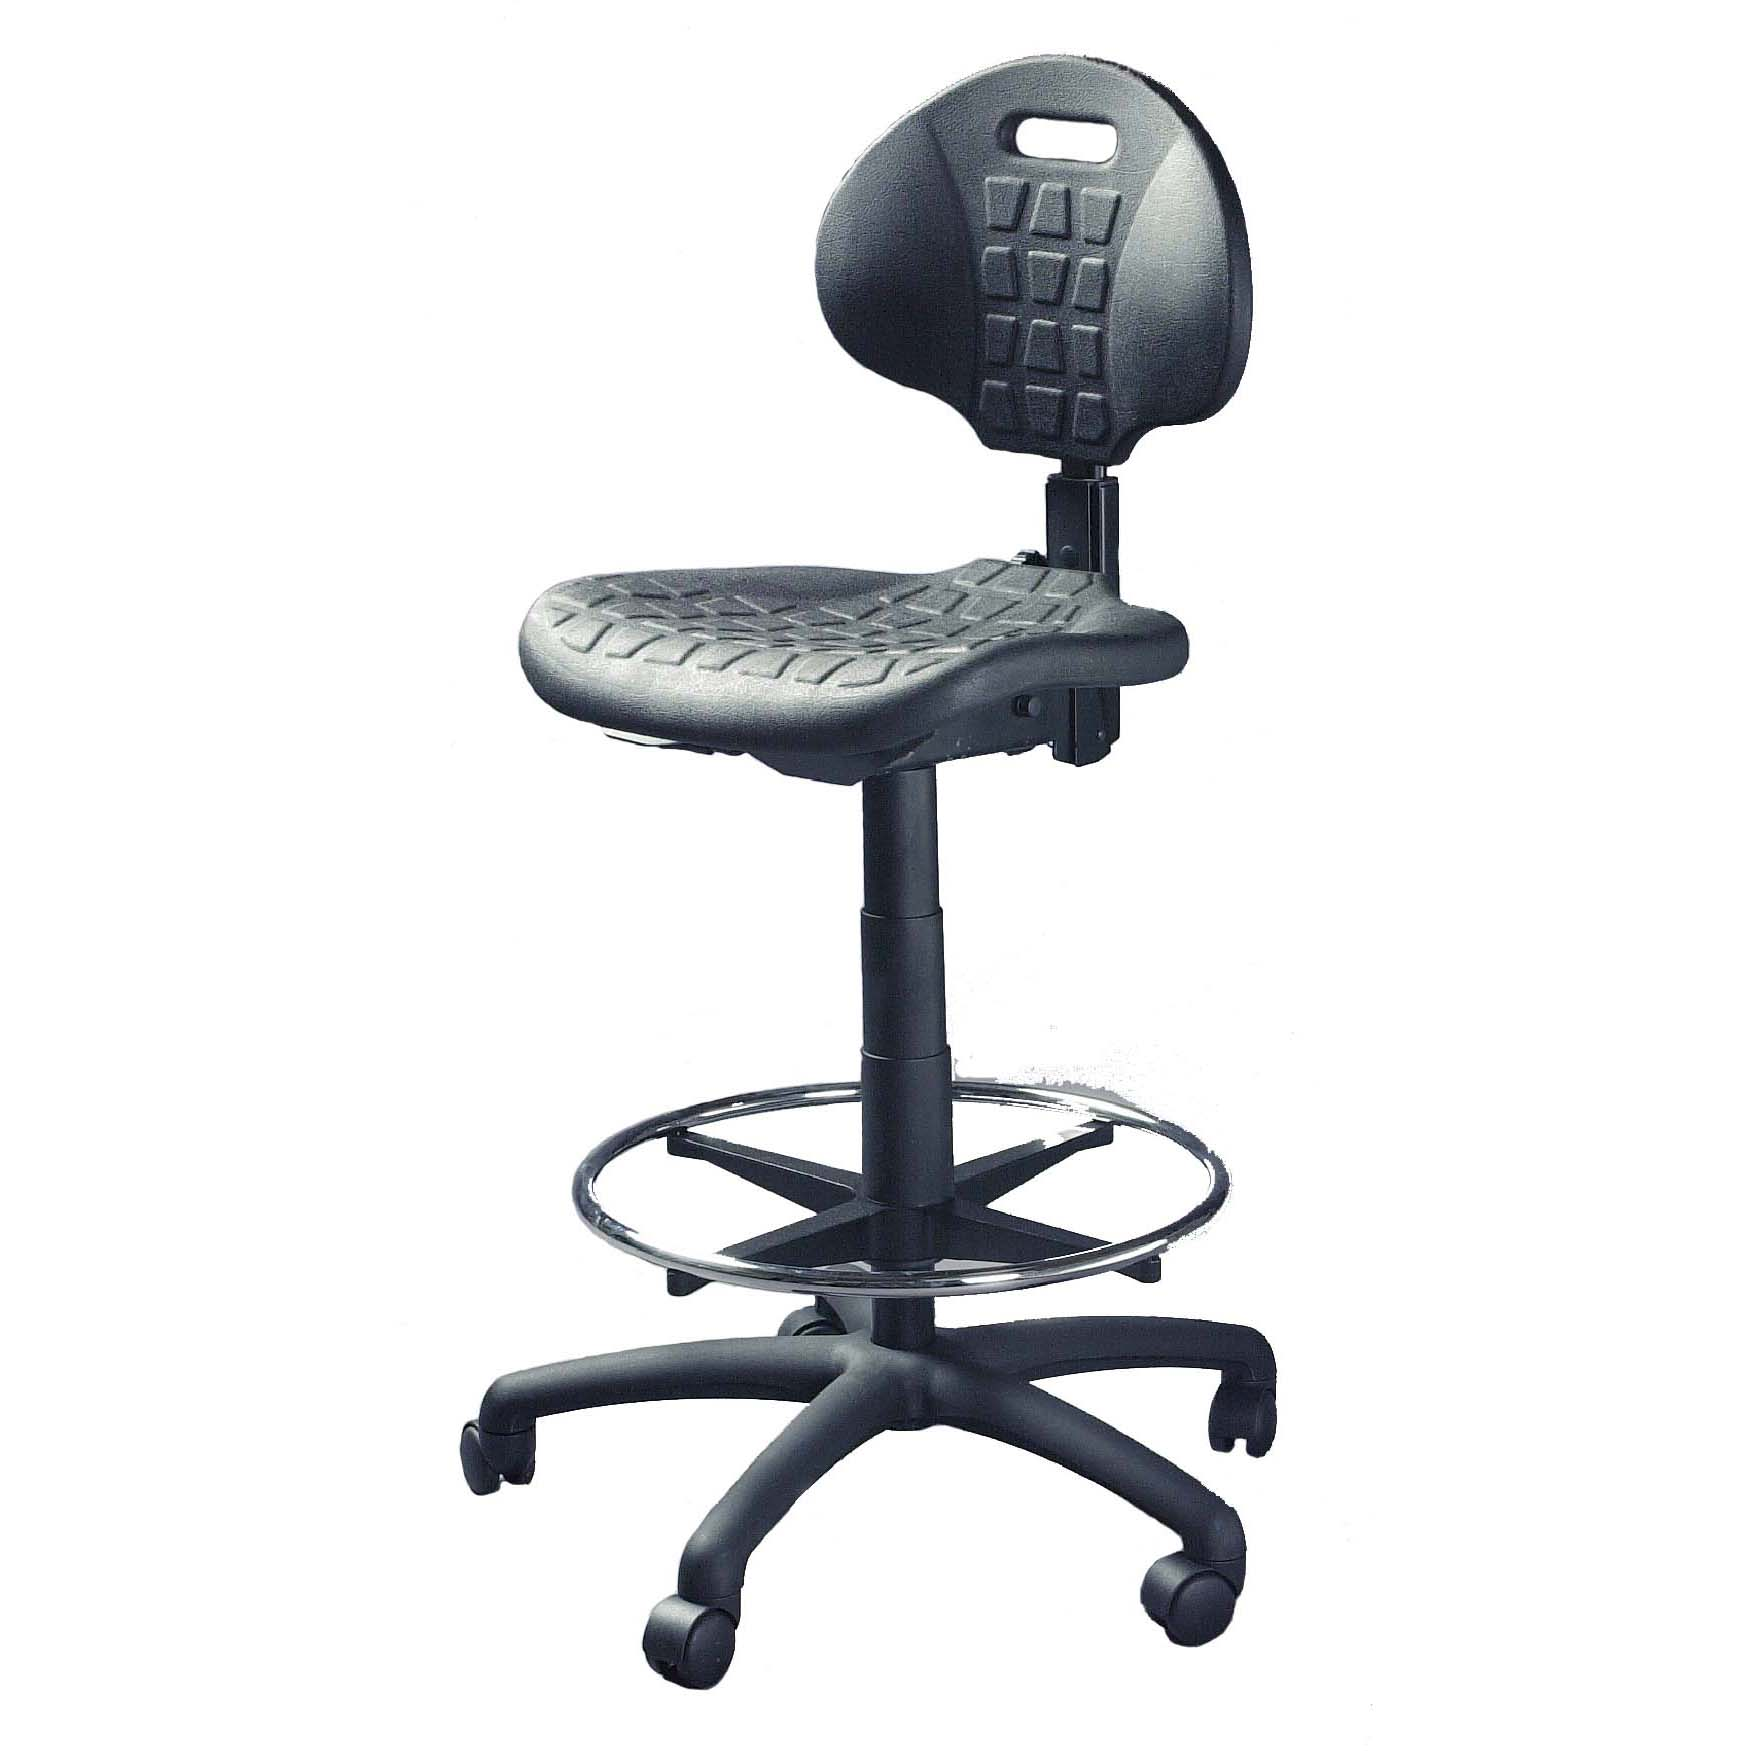 Pleasing Workout Lab Shop Chair With Footring Ibusinesslaw Wood Chair Design Ideas Ibusinesslaworg